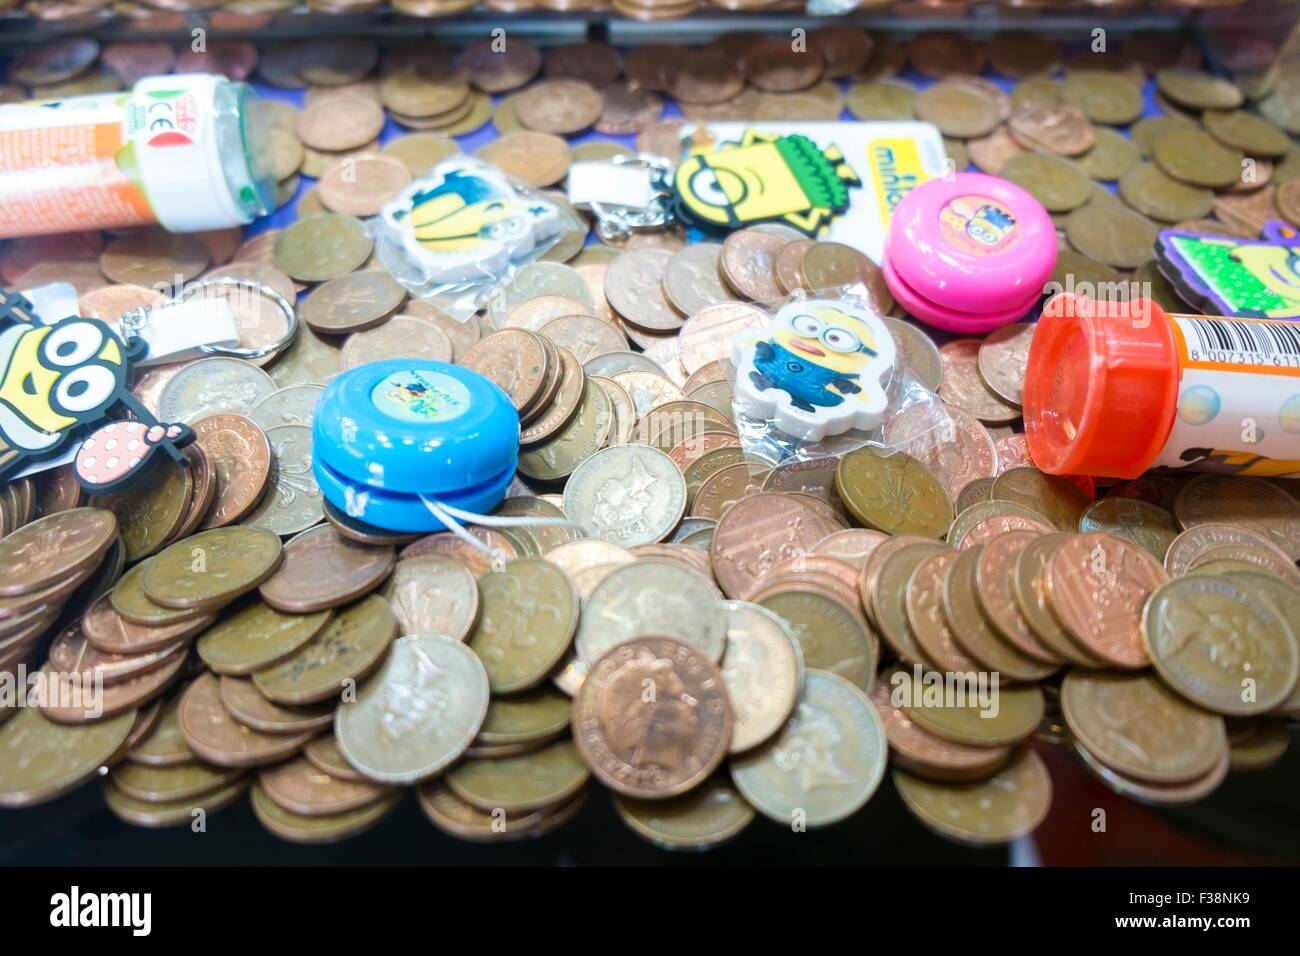 Coins in a penny drop arcade machine. - Stock Image